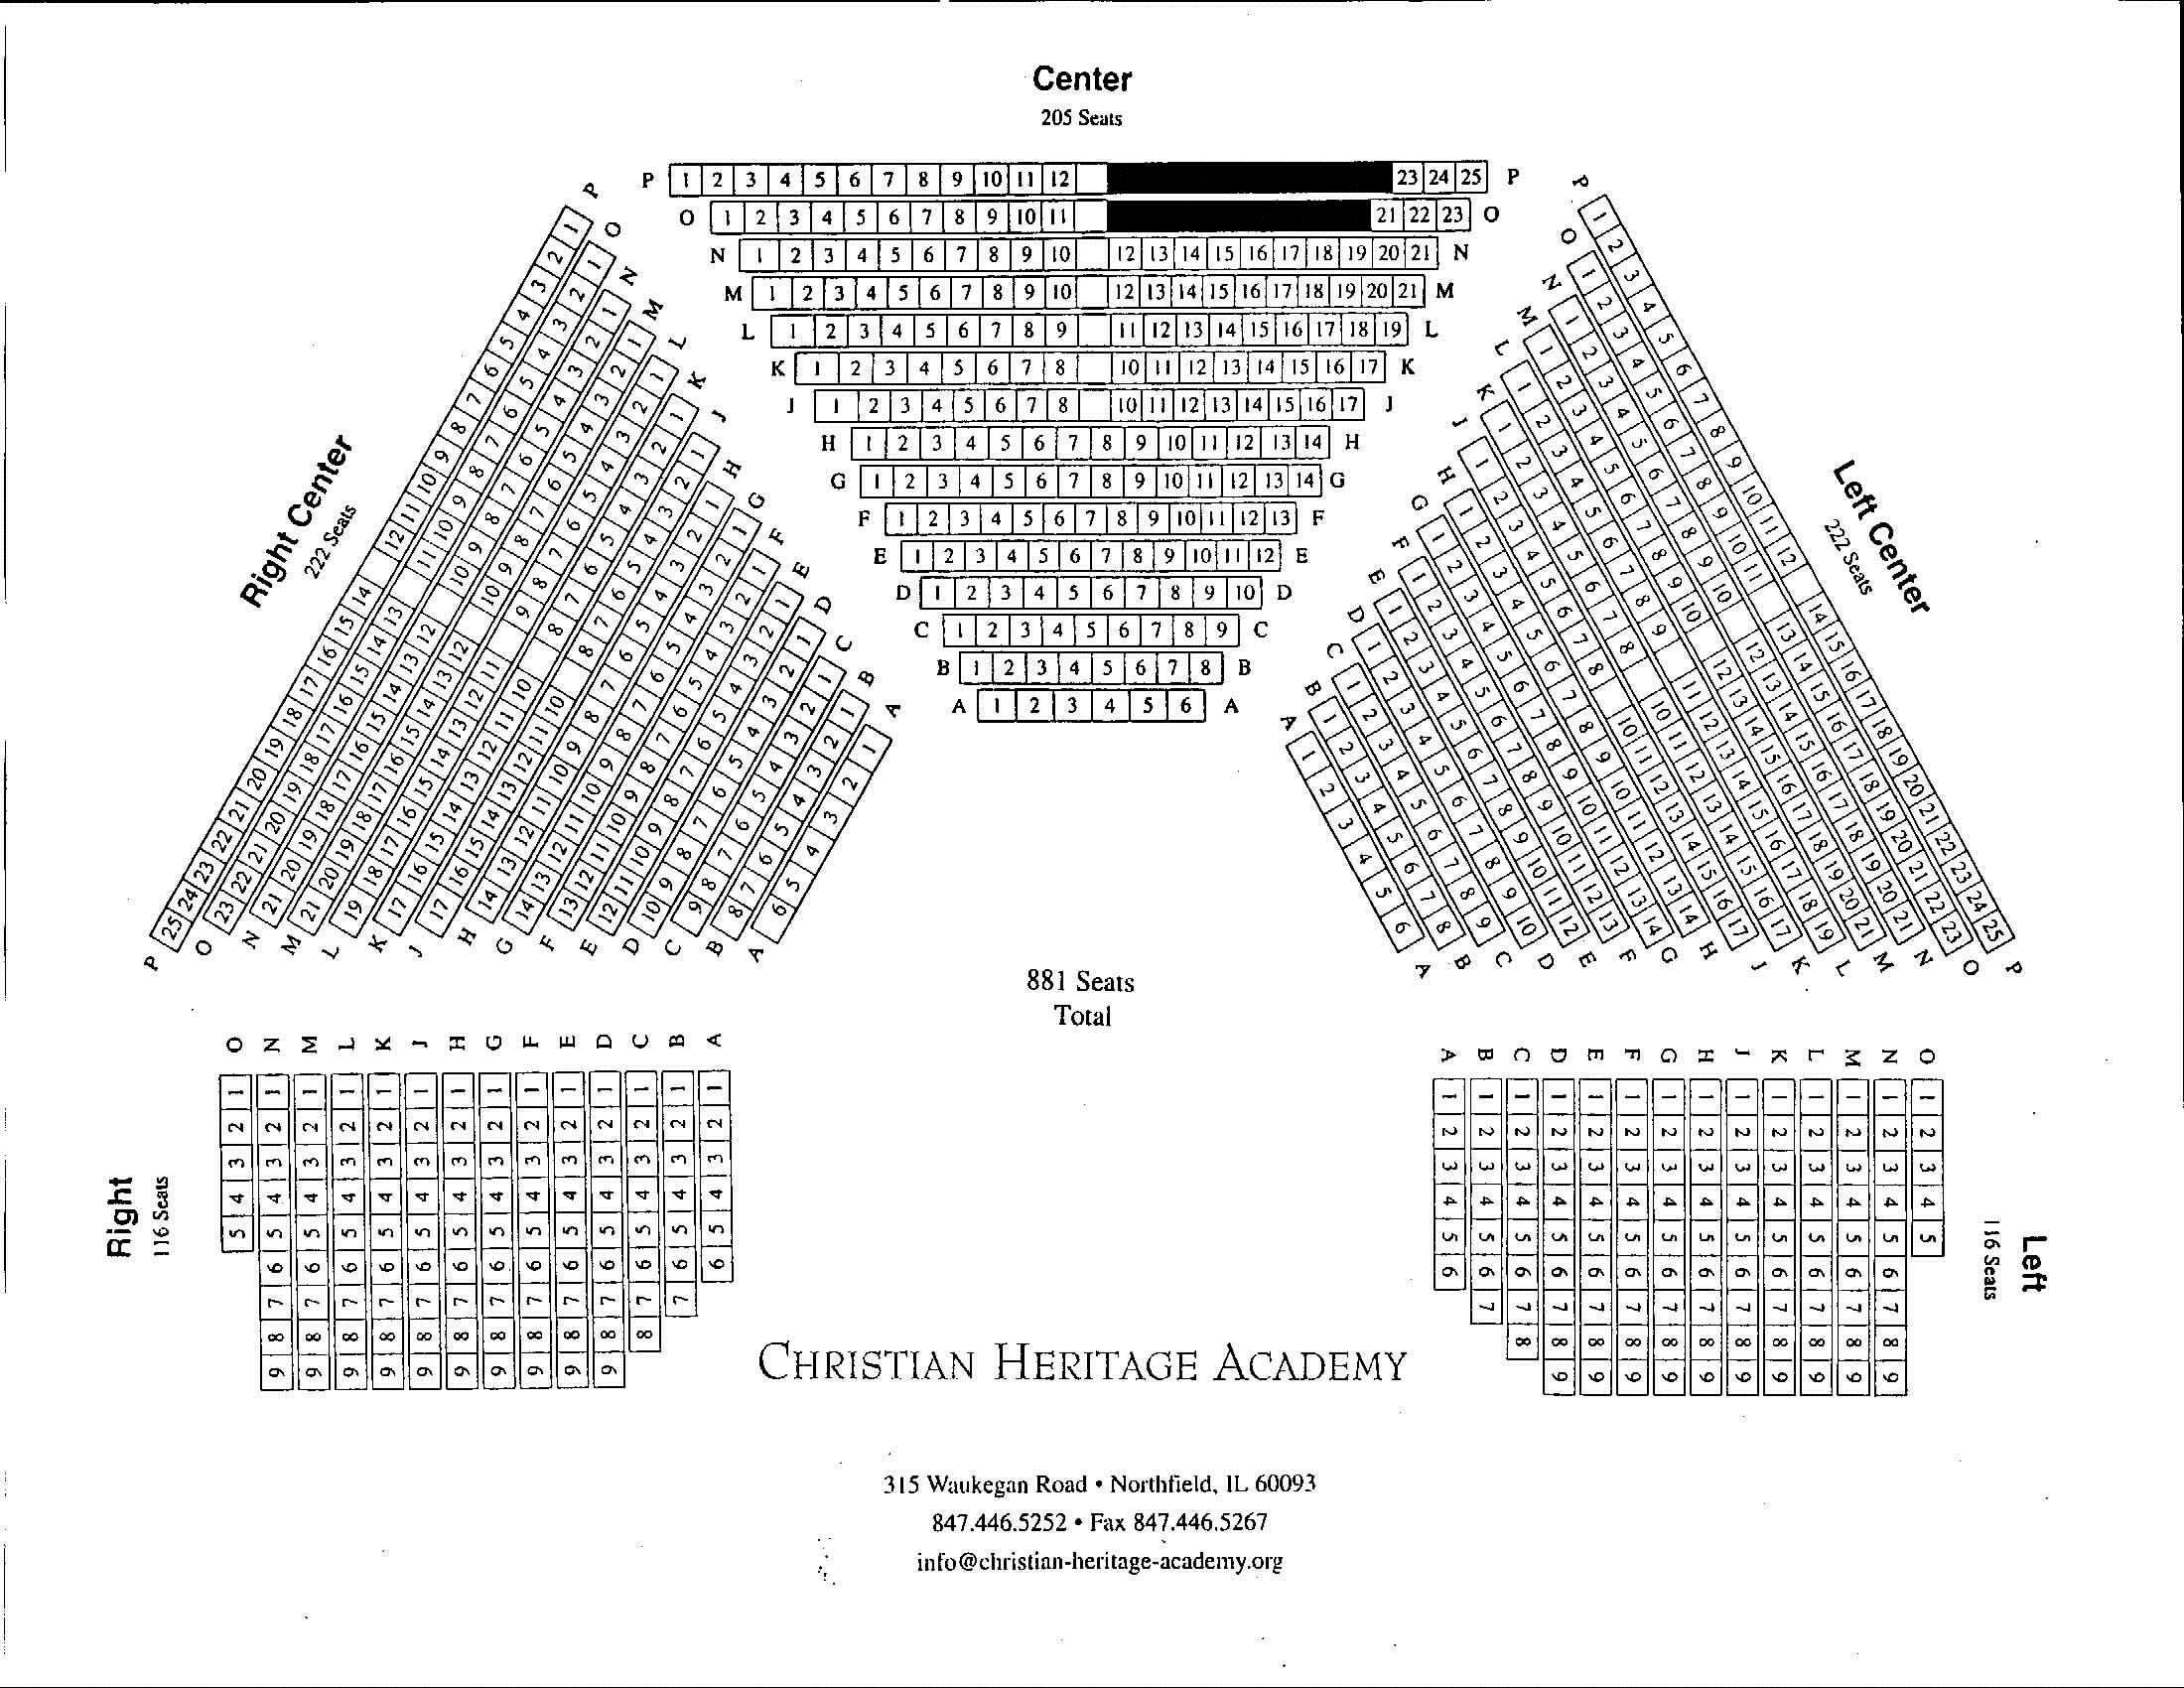 Christian Heritage Academy Seating Chart christianheritage